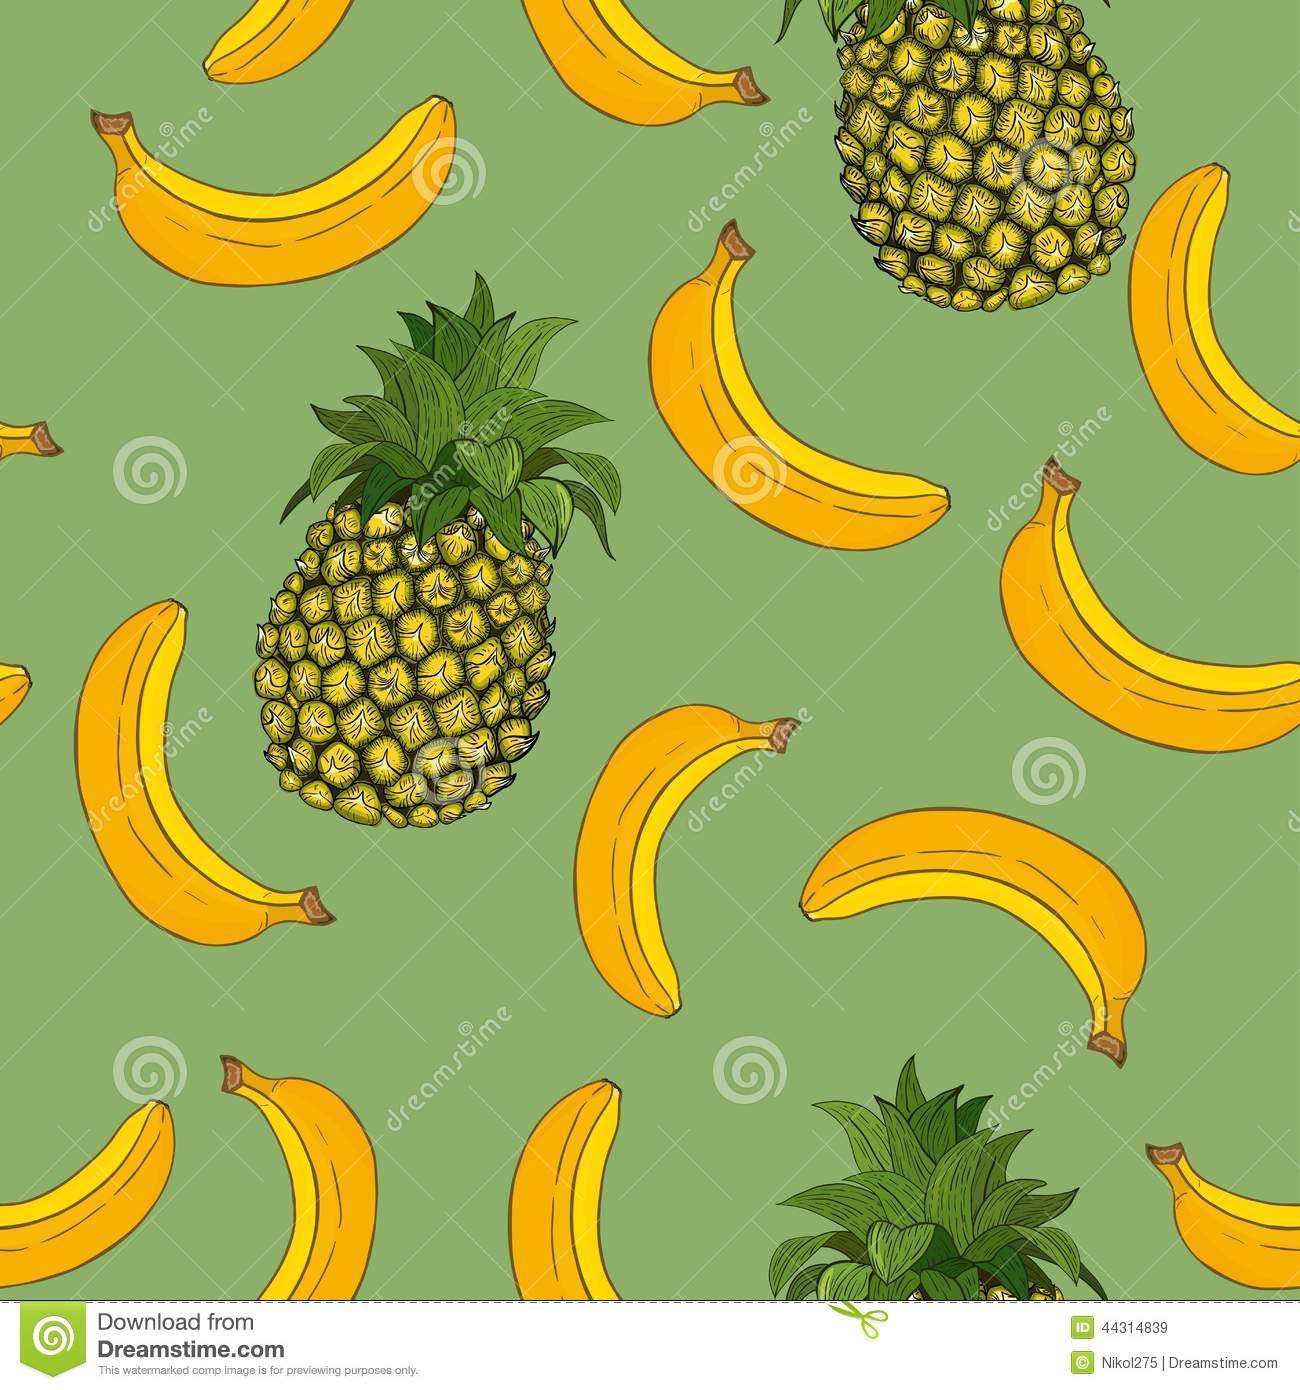 Pineapple Wallpaper Patterns Banana And Pineapple Pattern 1300x1390